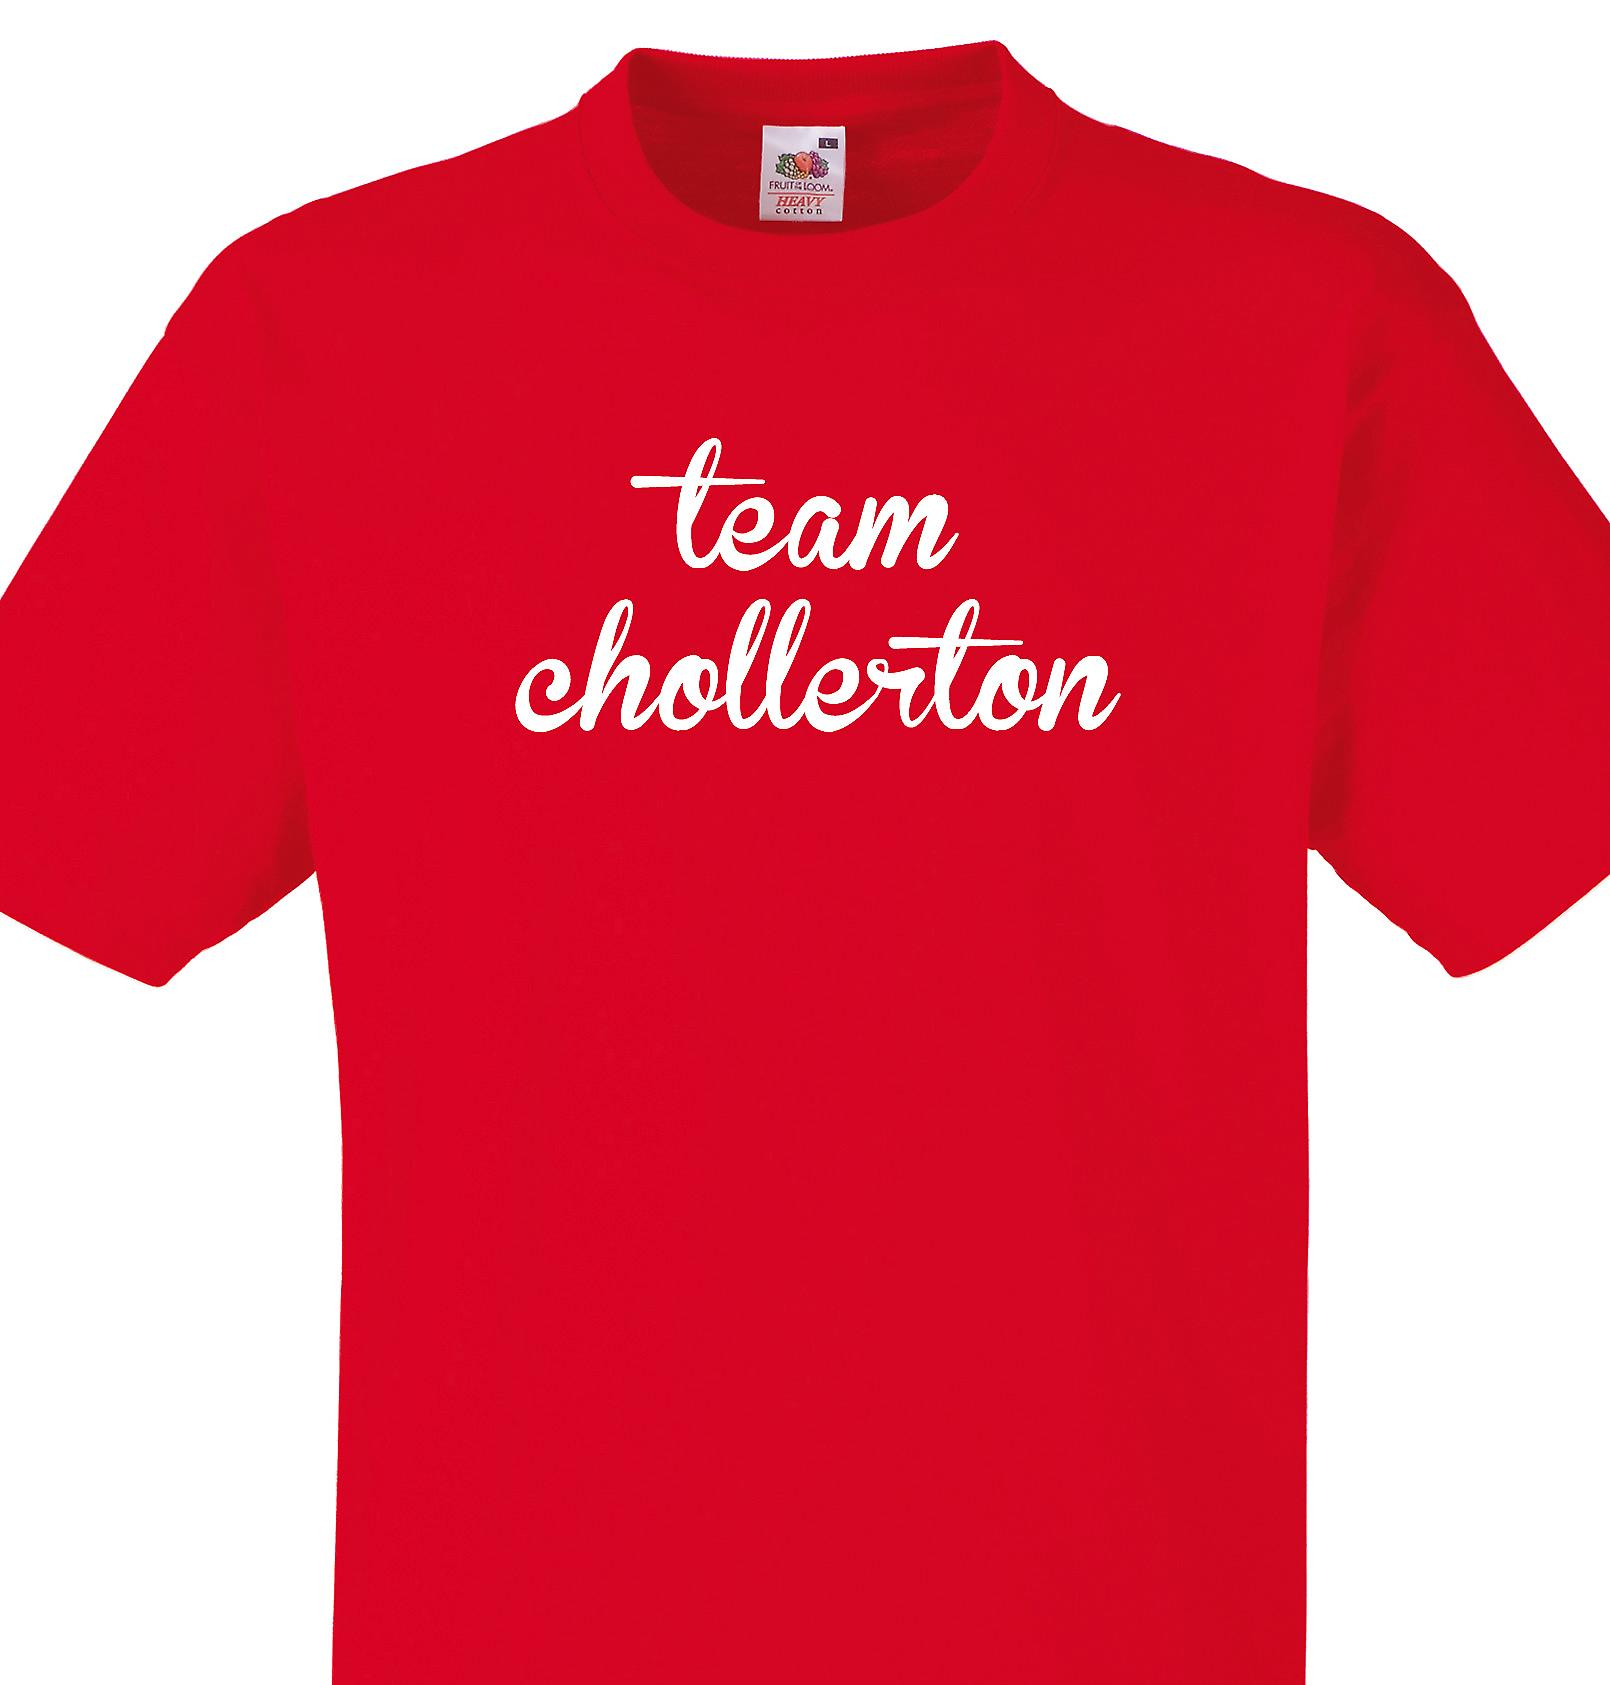 Team Chollerton Red T shirt